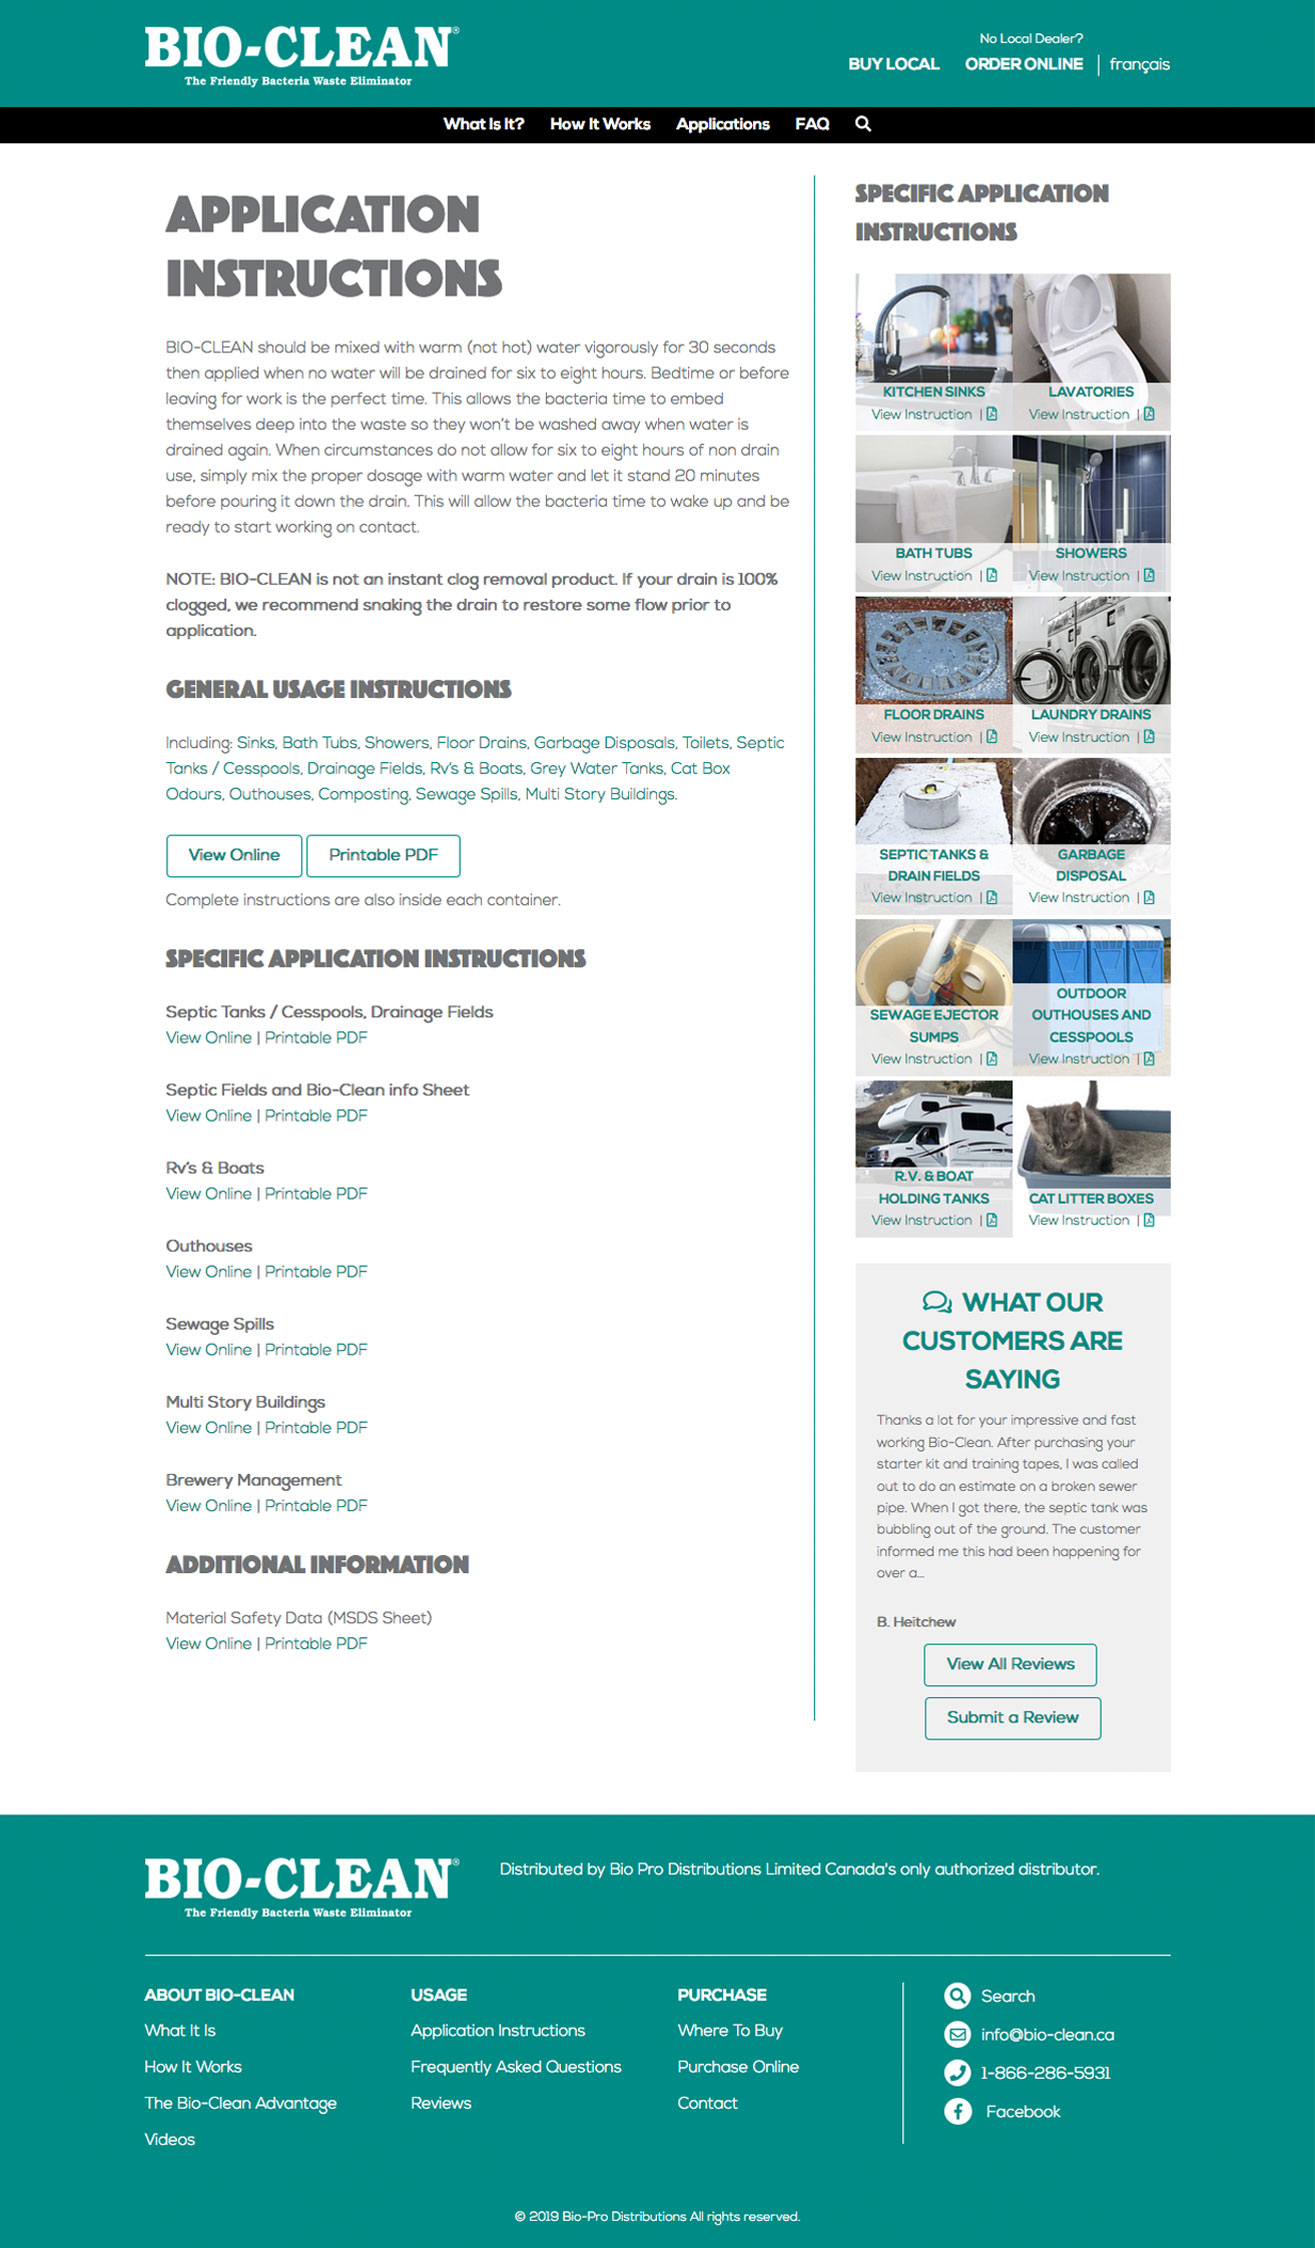 Bio-Clean Applications Page